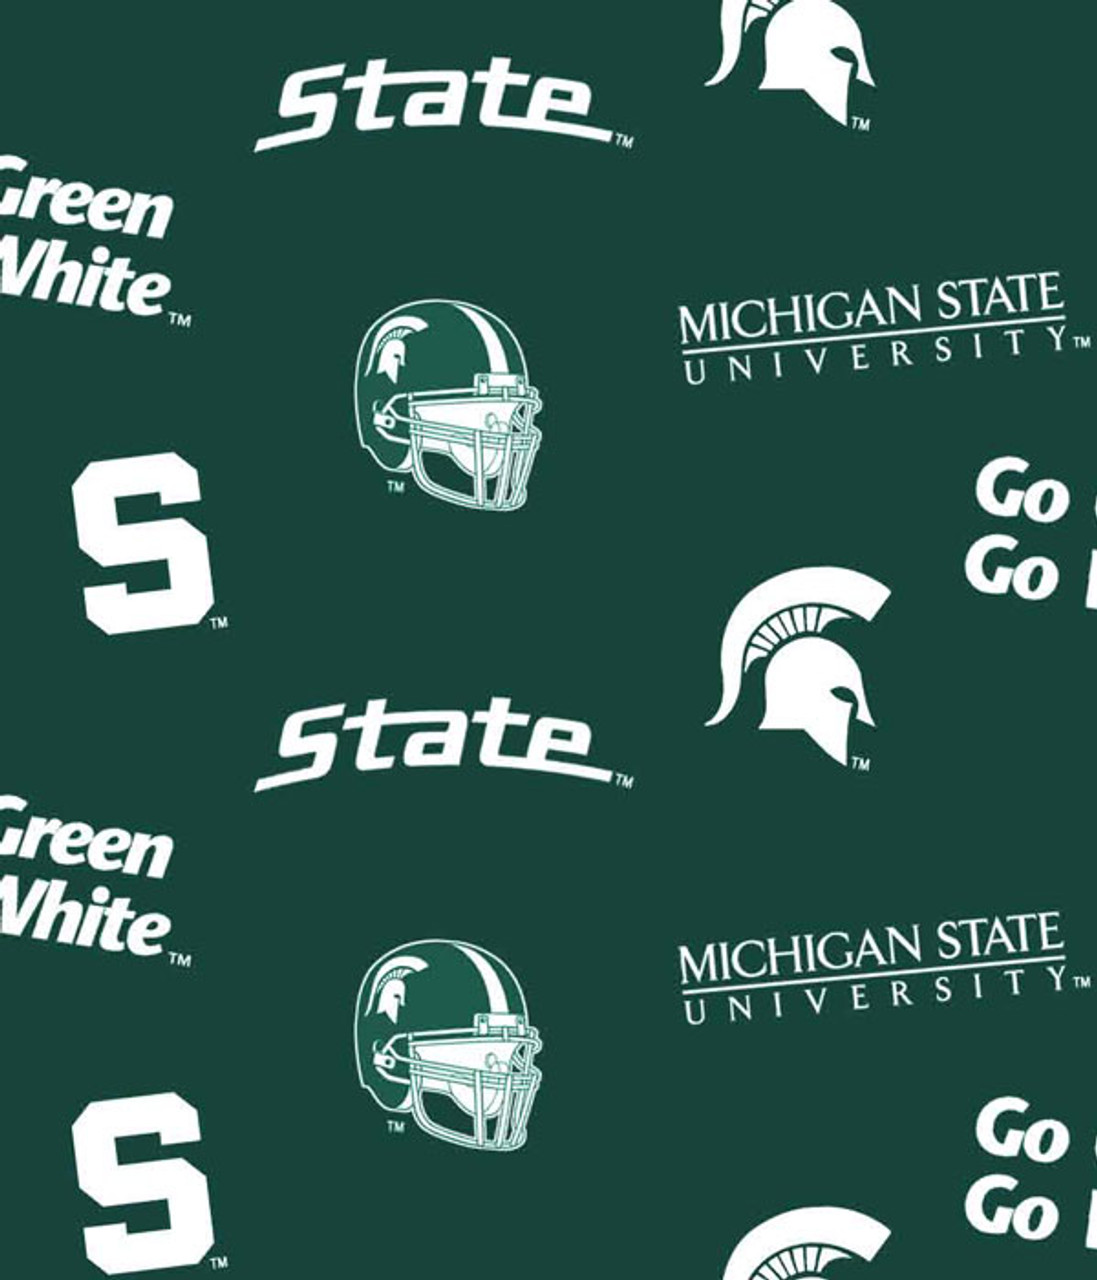 Collegiate Cotton Broadcloth Michigan State Fabric By The Yard